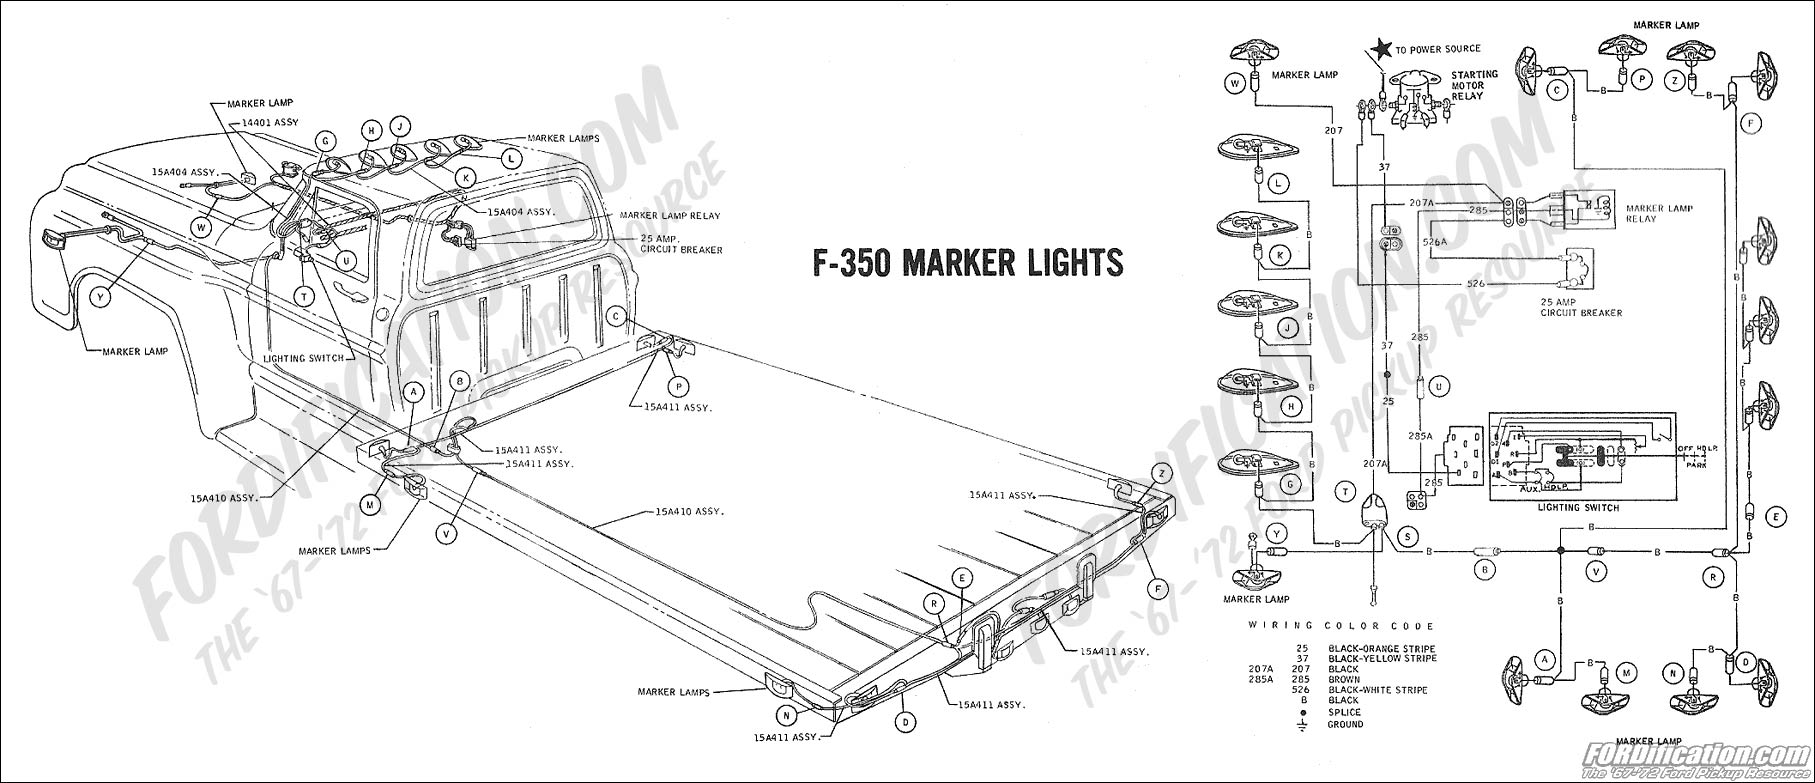 86 ford ranger tail light wiring diagram